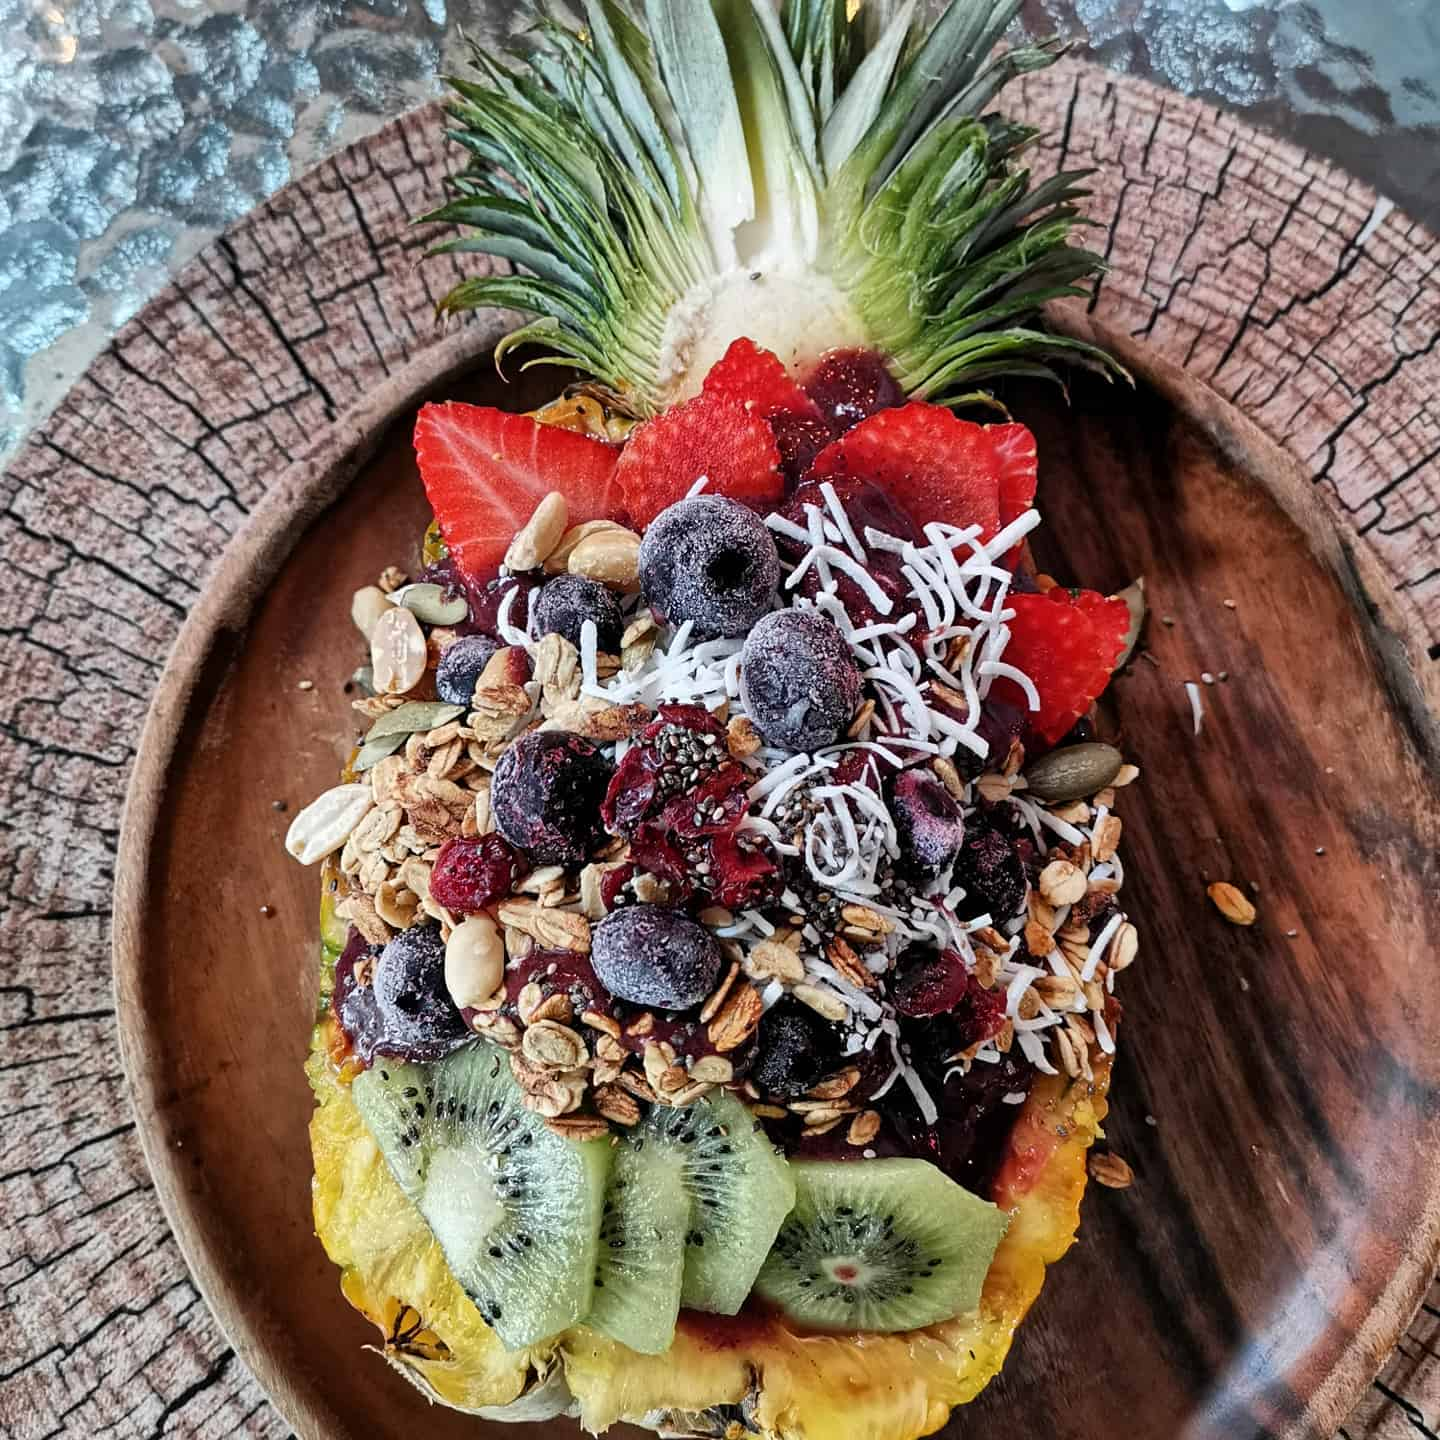 vegan restaurants in playa del carmen